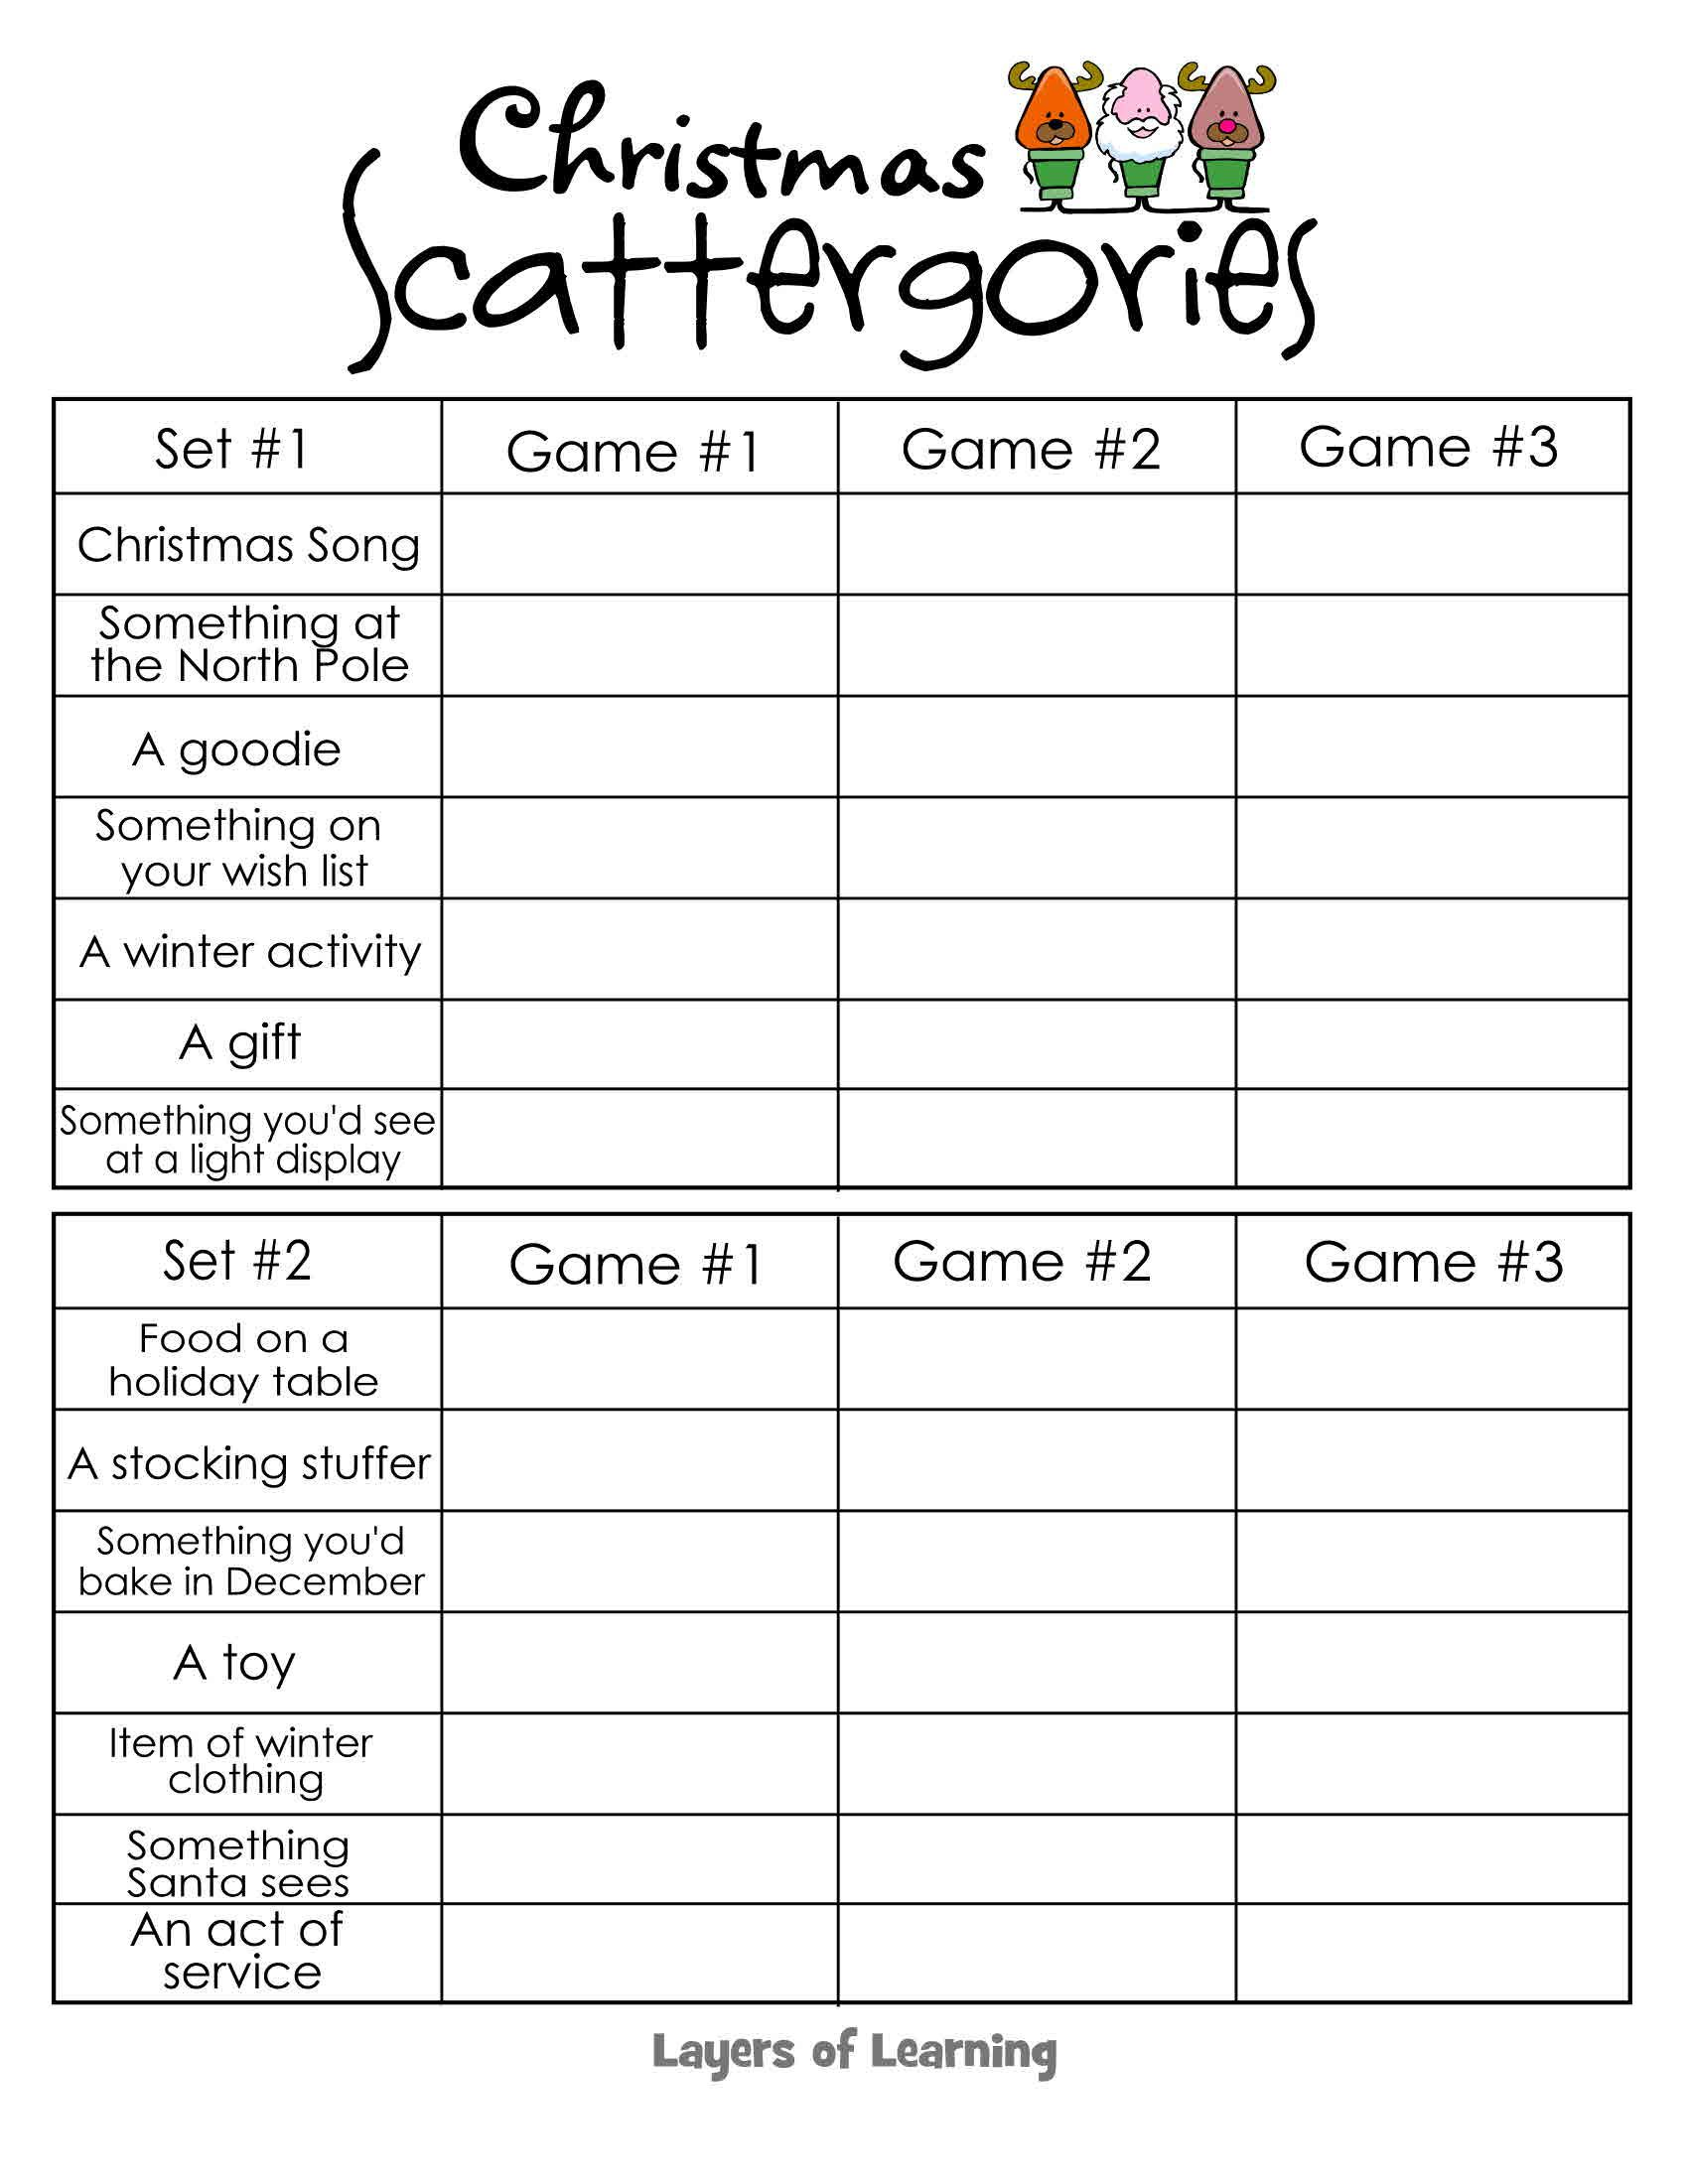 Uncategorized Fun Printable Games free printable christmas scattergories game for a fun that will get your kids thinking while